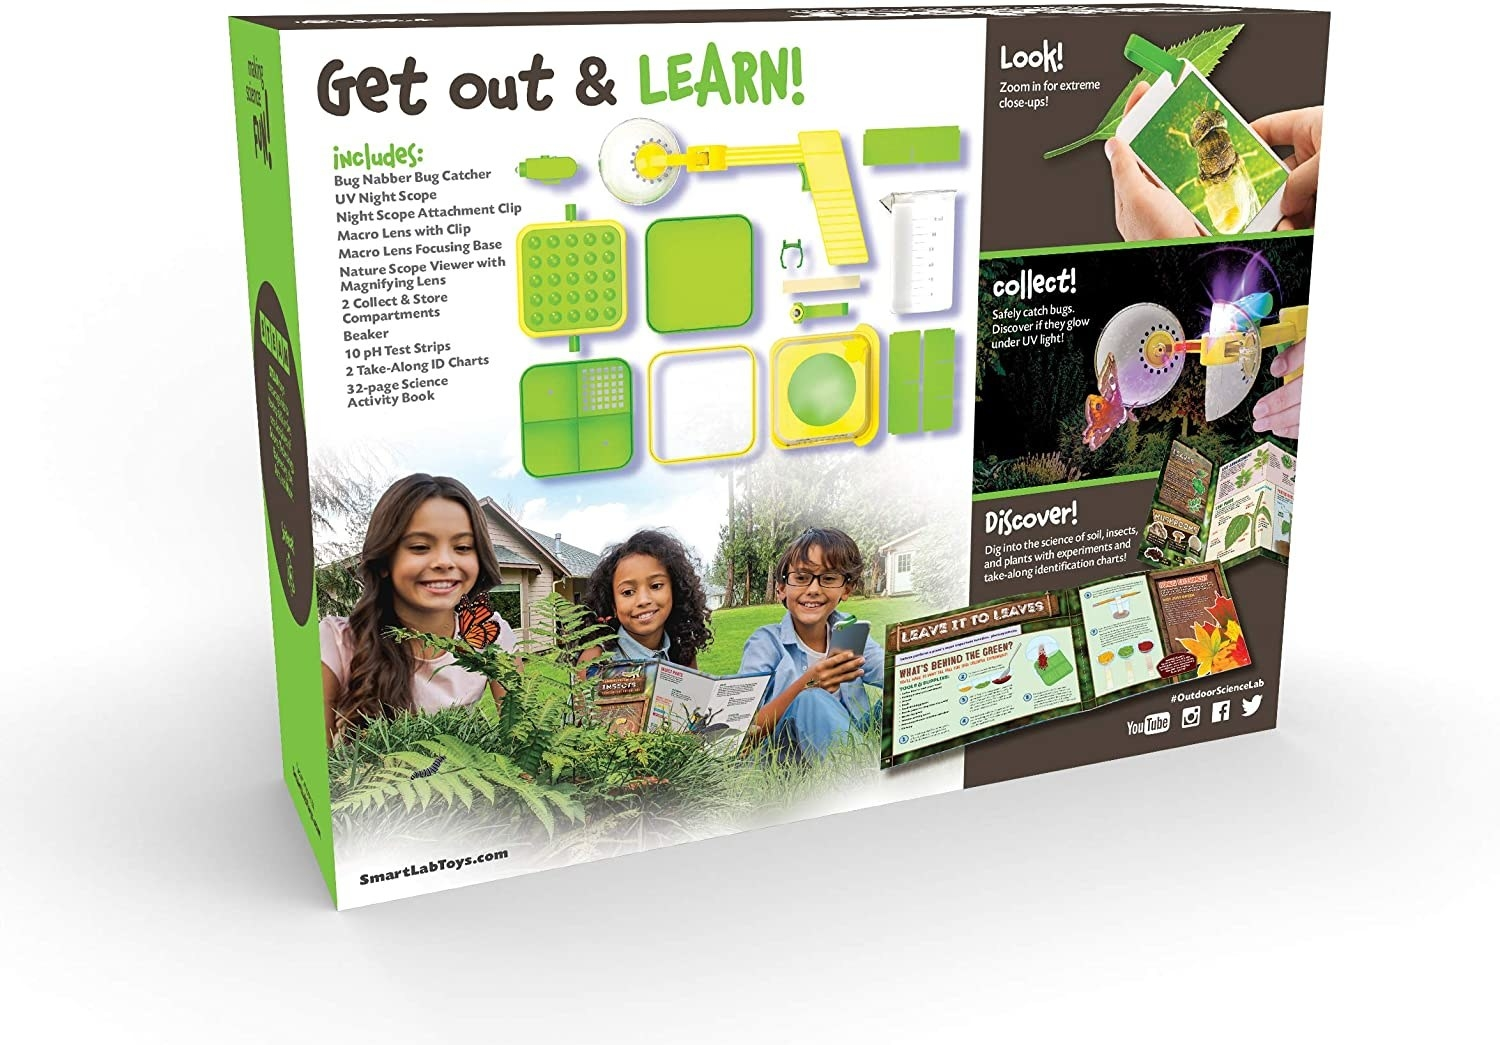 The outdoor science lab box